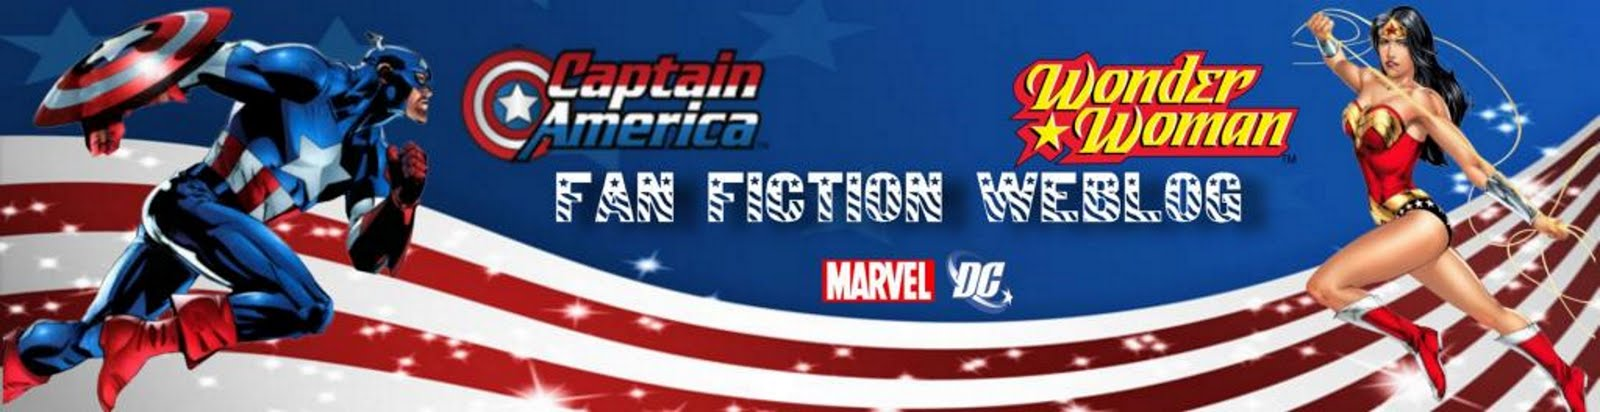 Captain America and Wonder Woman Fanfiction